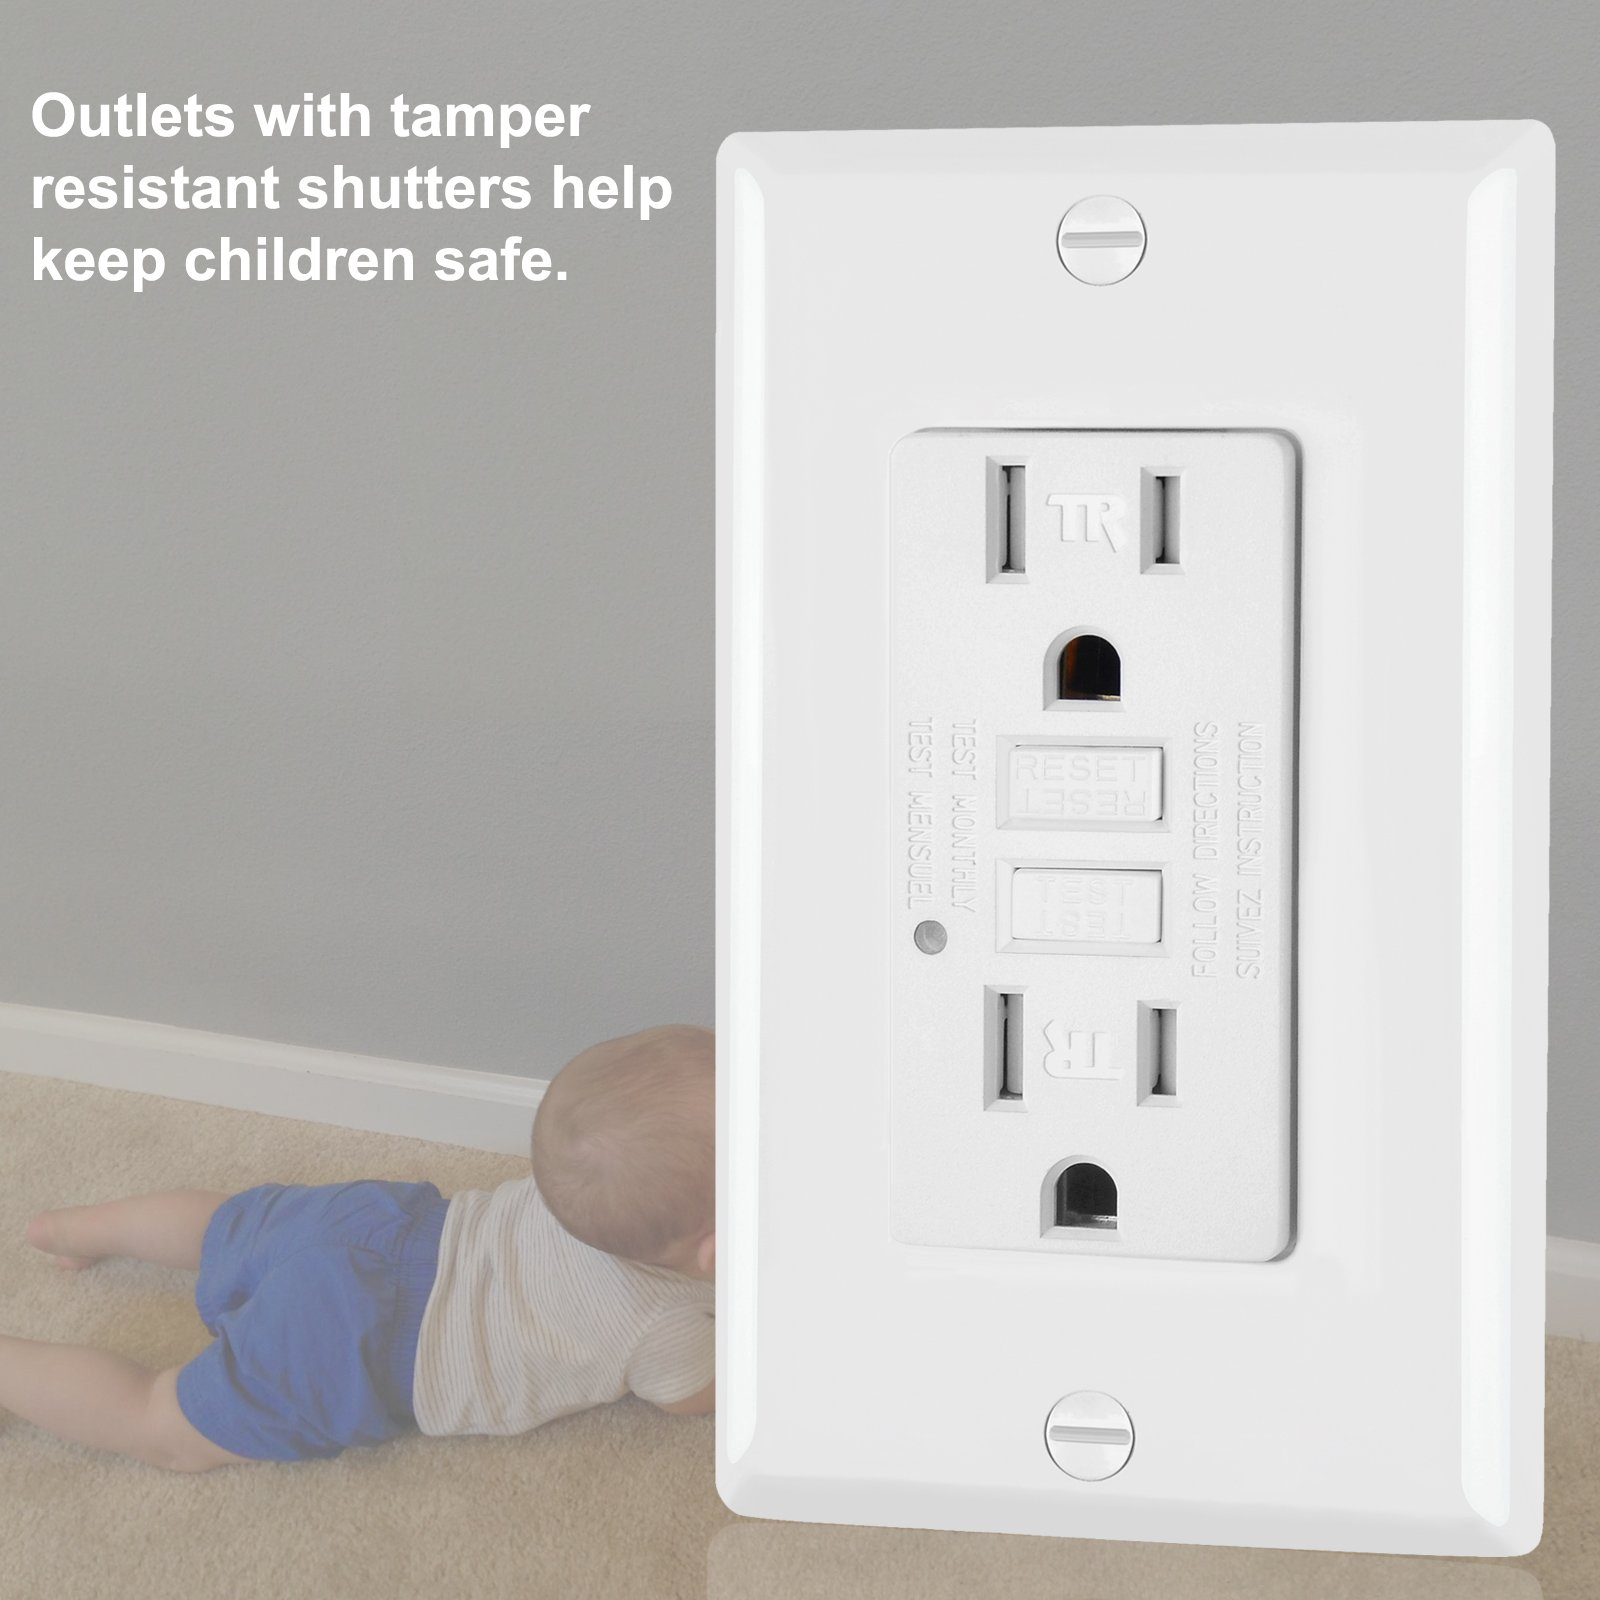 5 Pack - ELECTECK 15A/125V Tamper Resistant GFCI Outlets, Decor Receptacle with LED Indicator, Decorative Wall Plates and Screws Included, Residential and Commercial Grade, ETL Certified, White by ELECTECK (Image #4)